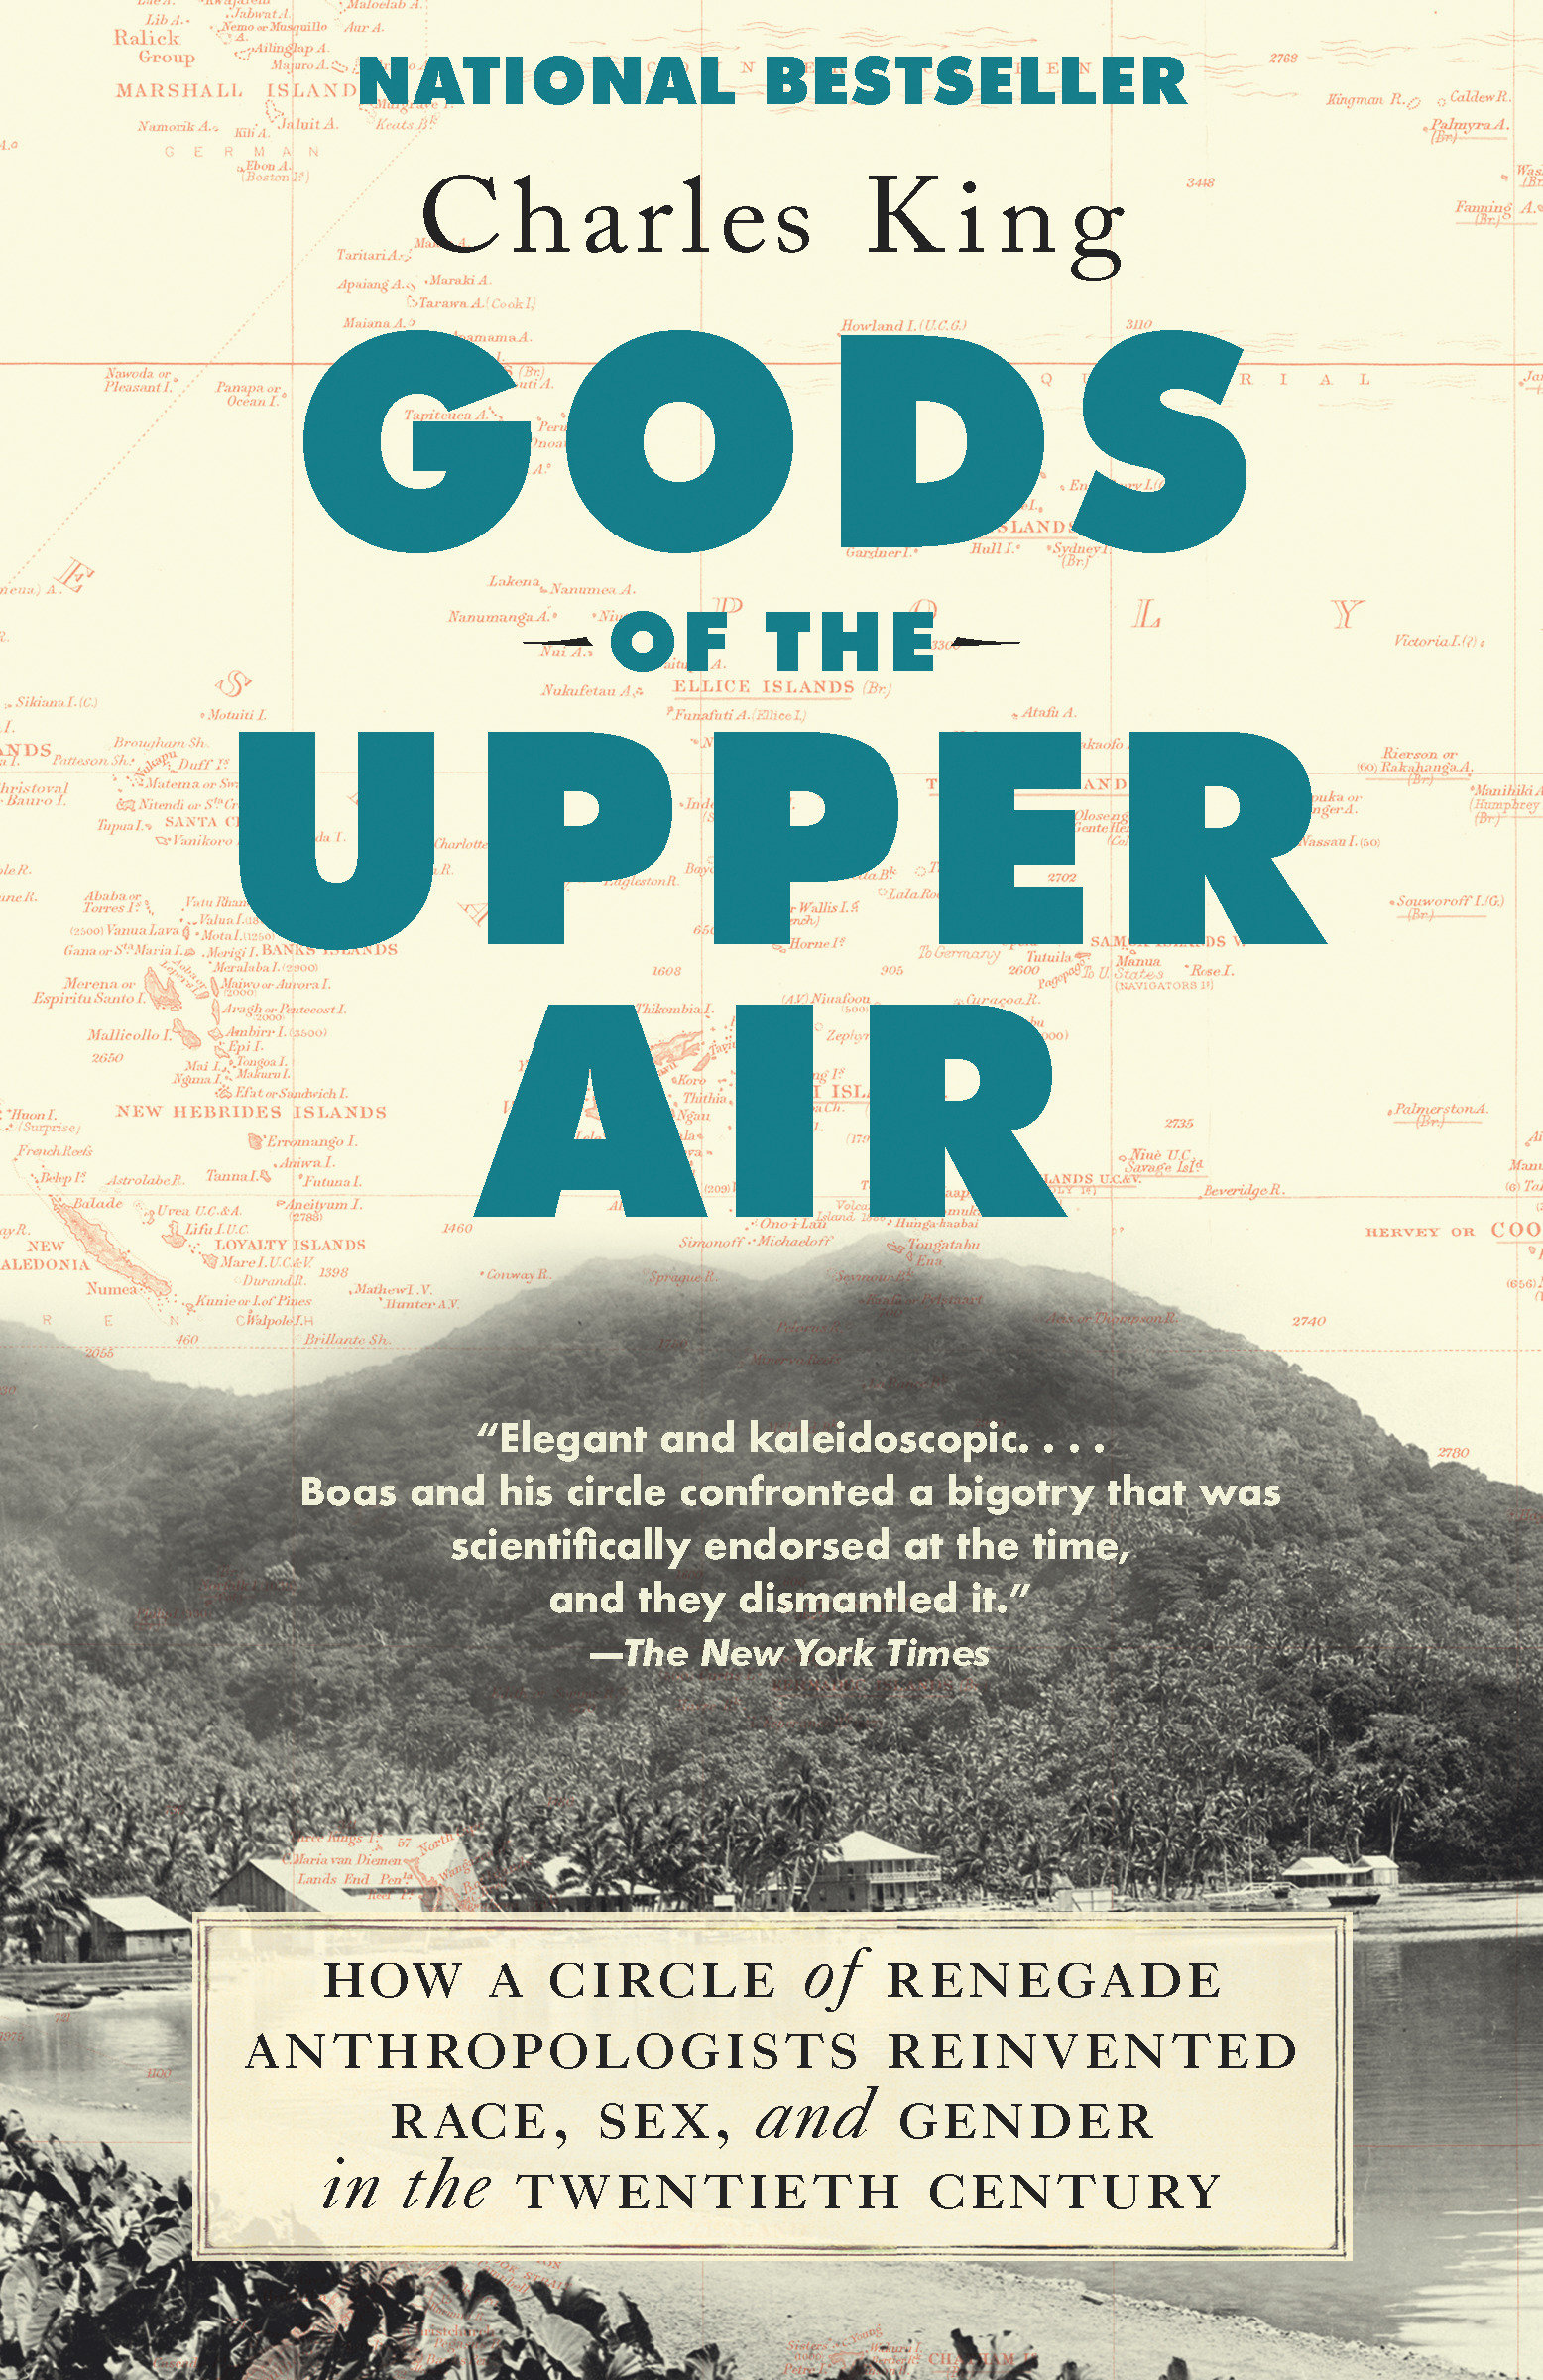 Gods of the Upper Air How a Circle of Renegade Anthropologists Reinvented Race, Sex, and Gender in the Twentieth Century